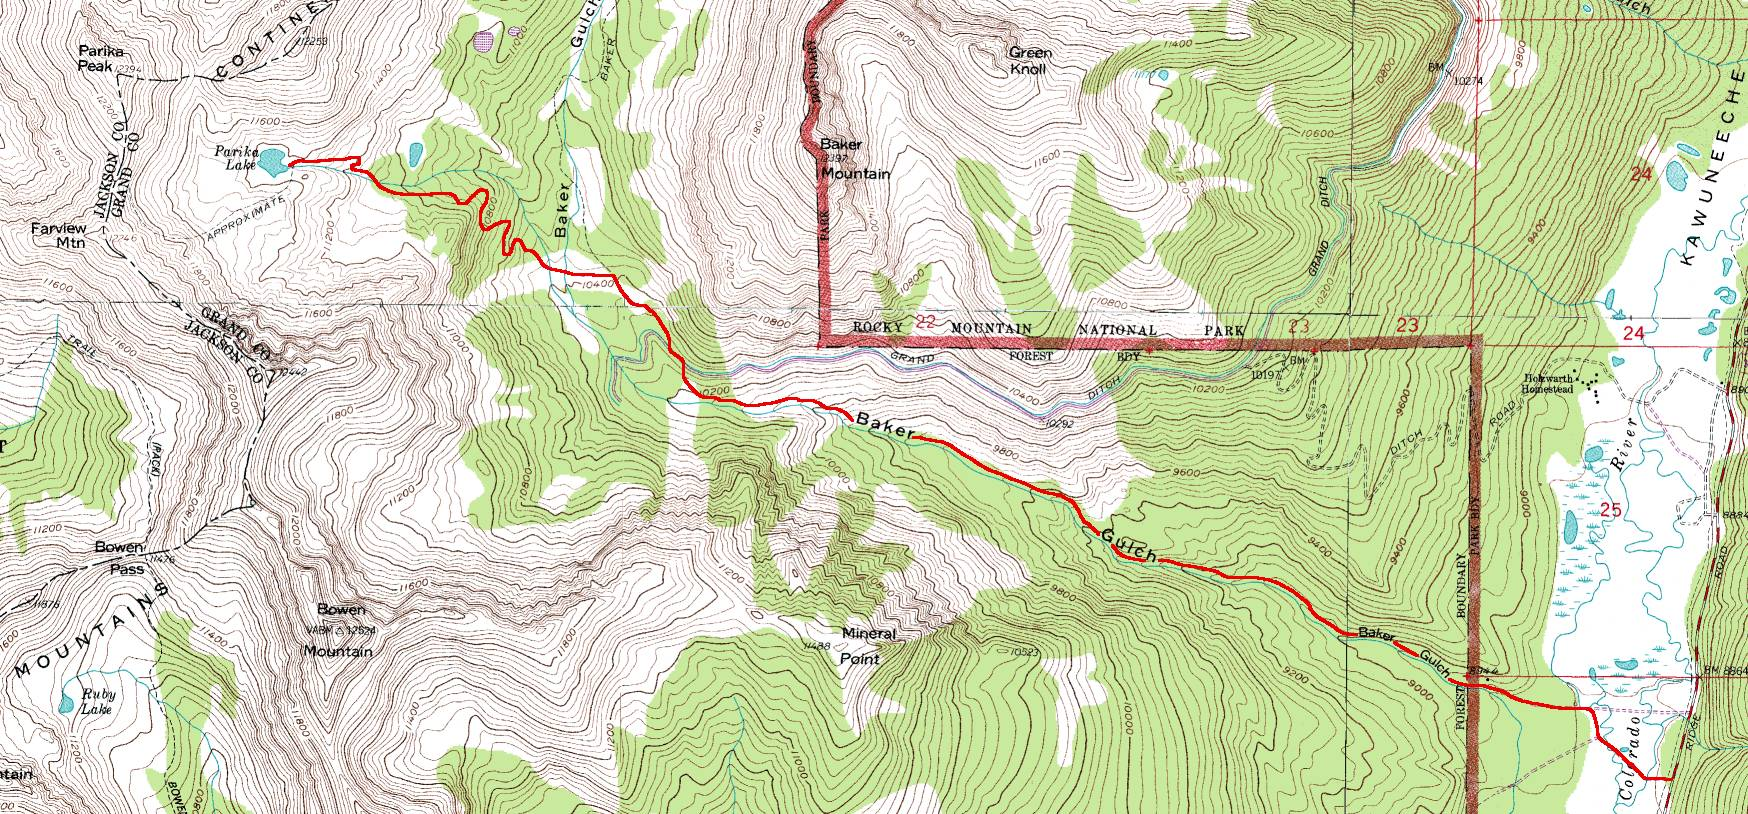 RMNP Trail Guide - Trail Map